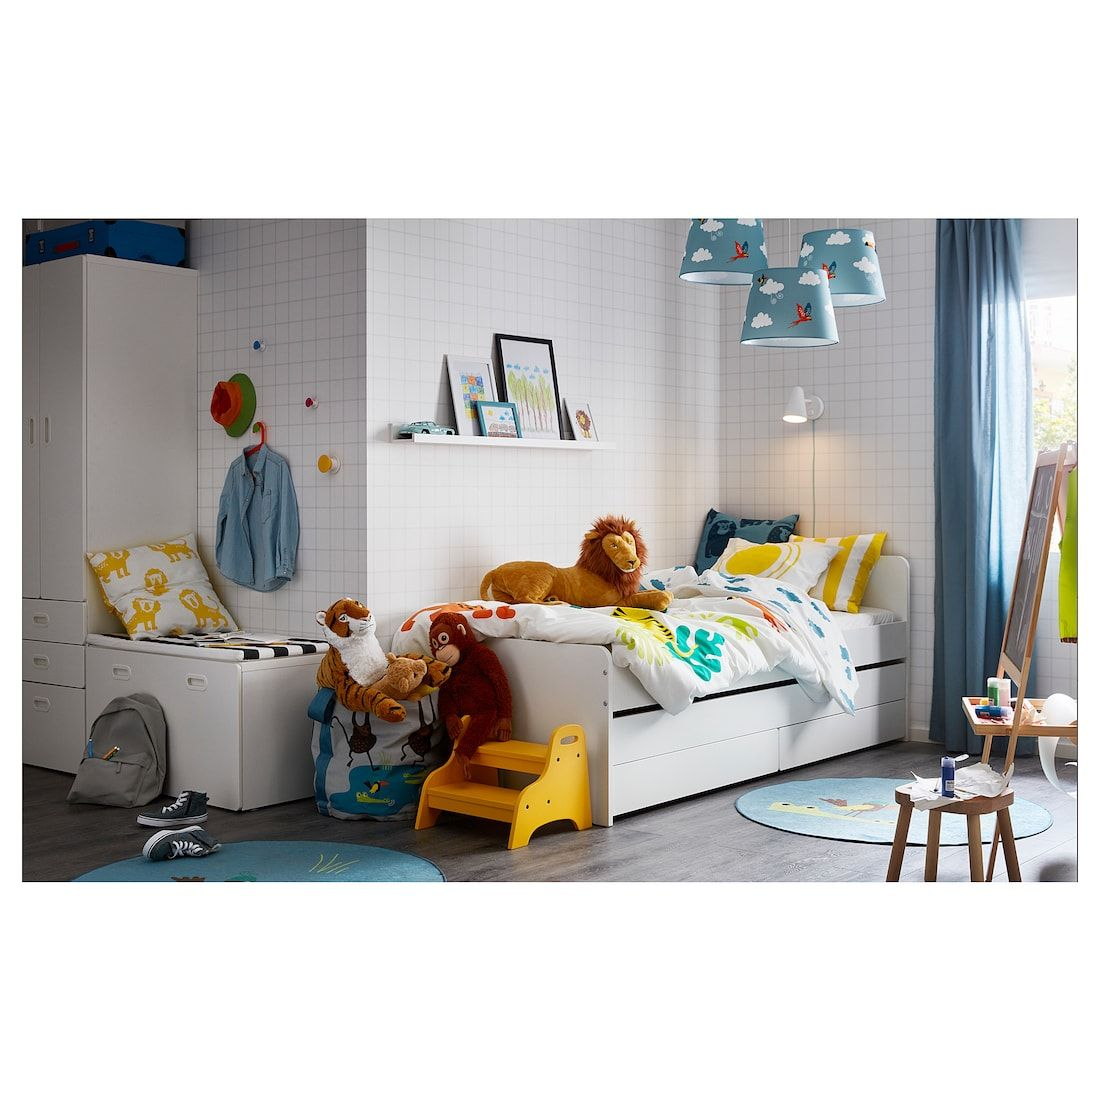 SLÄKT Bed frame w/pullout bed + storage, white, Twin